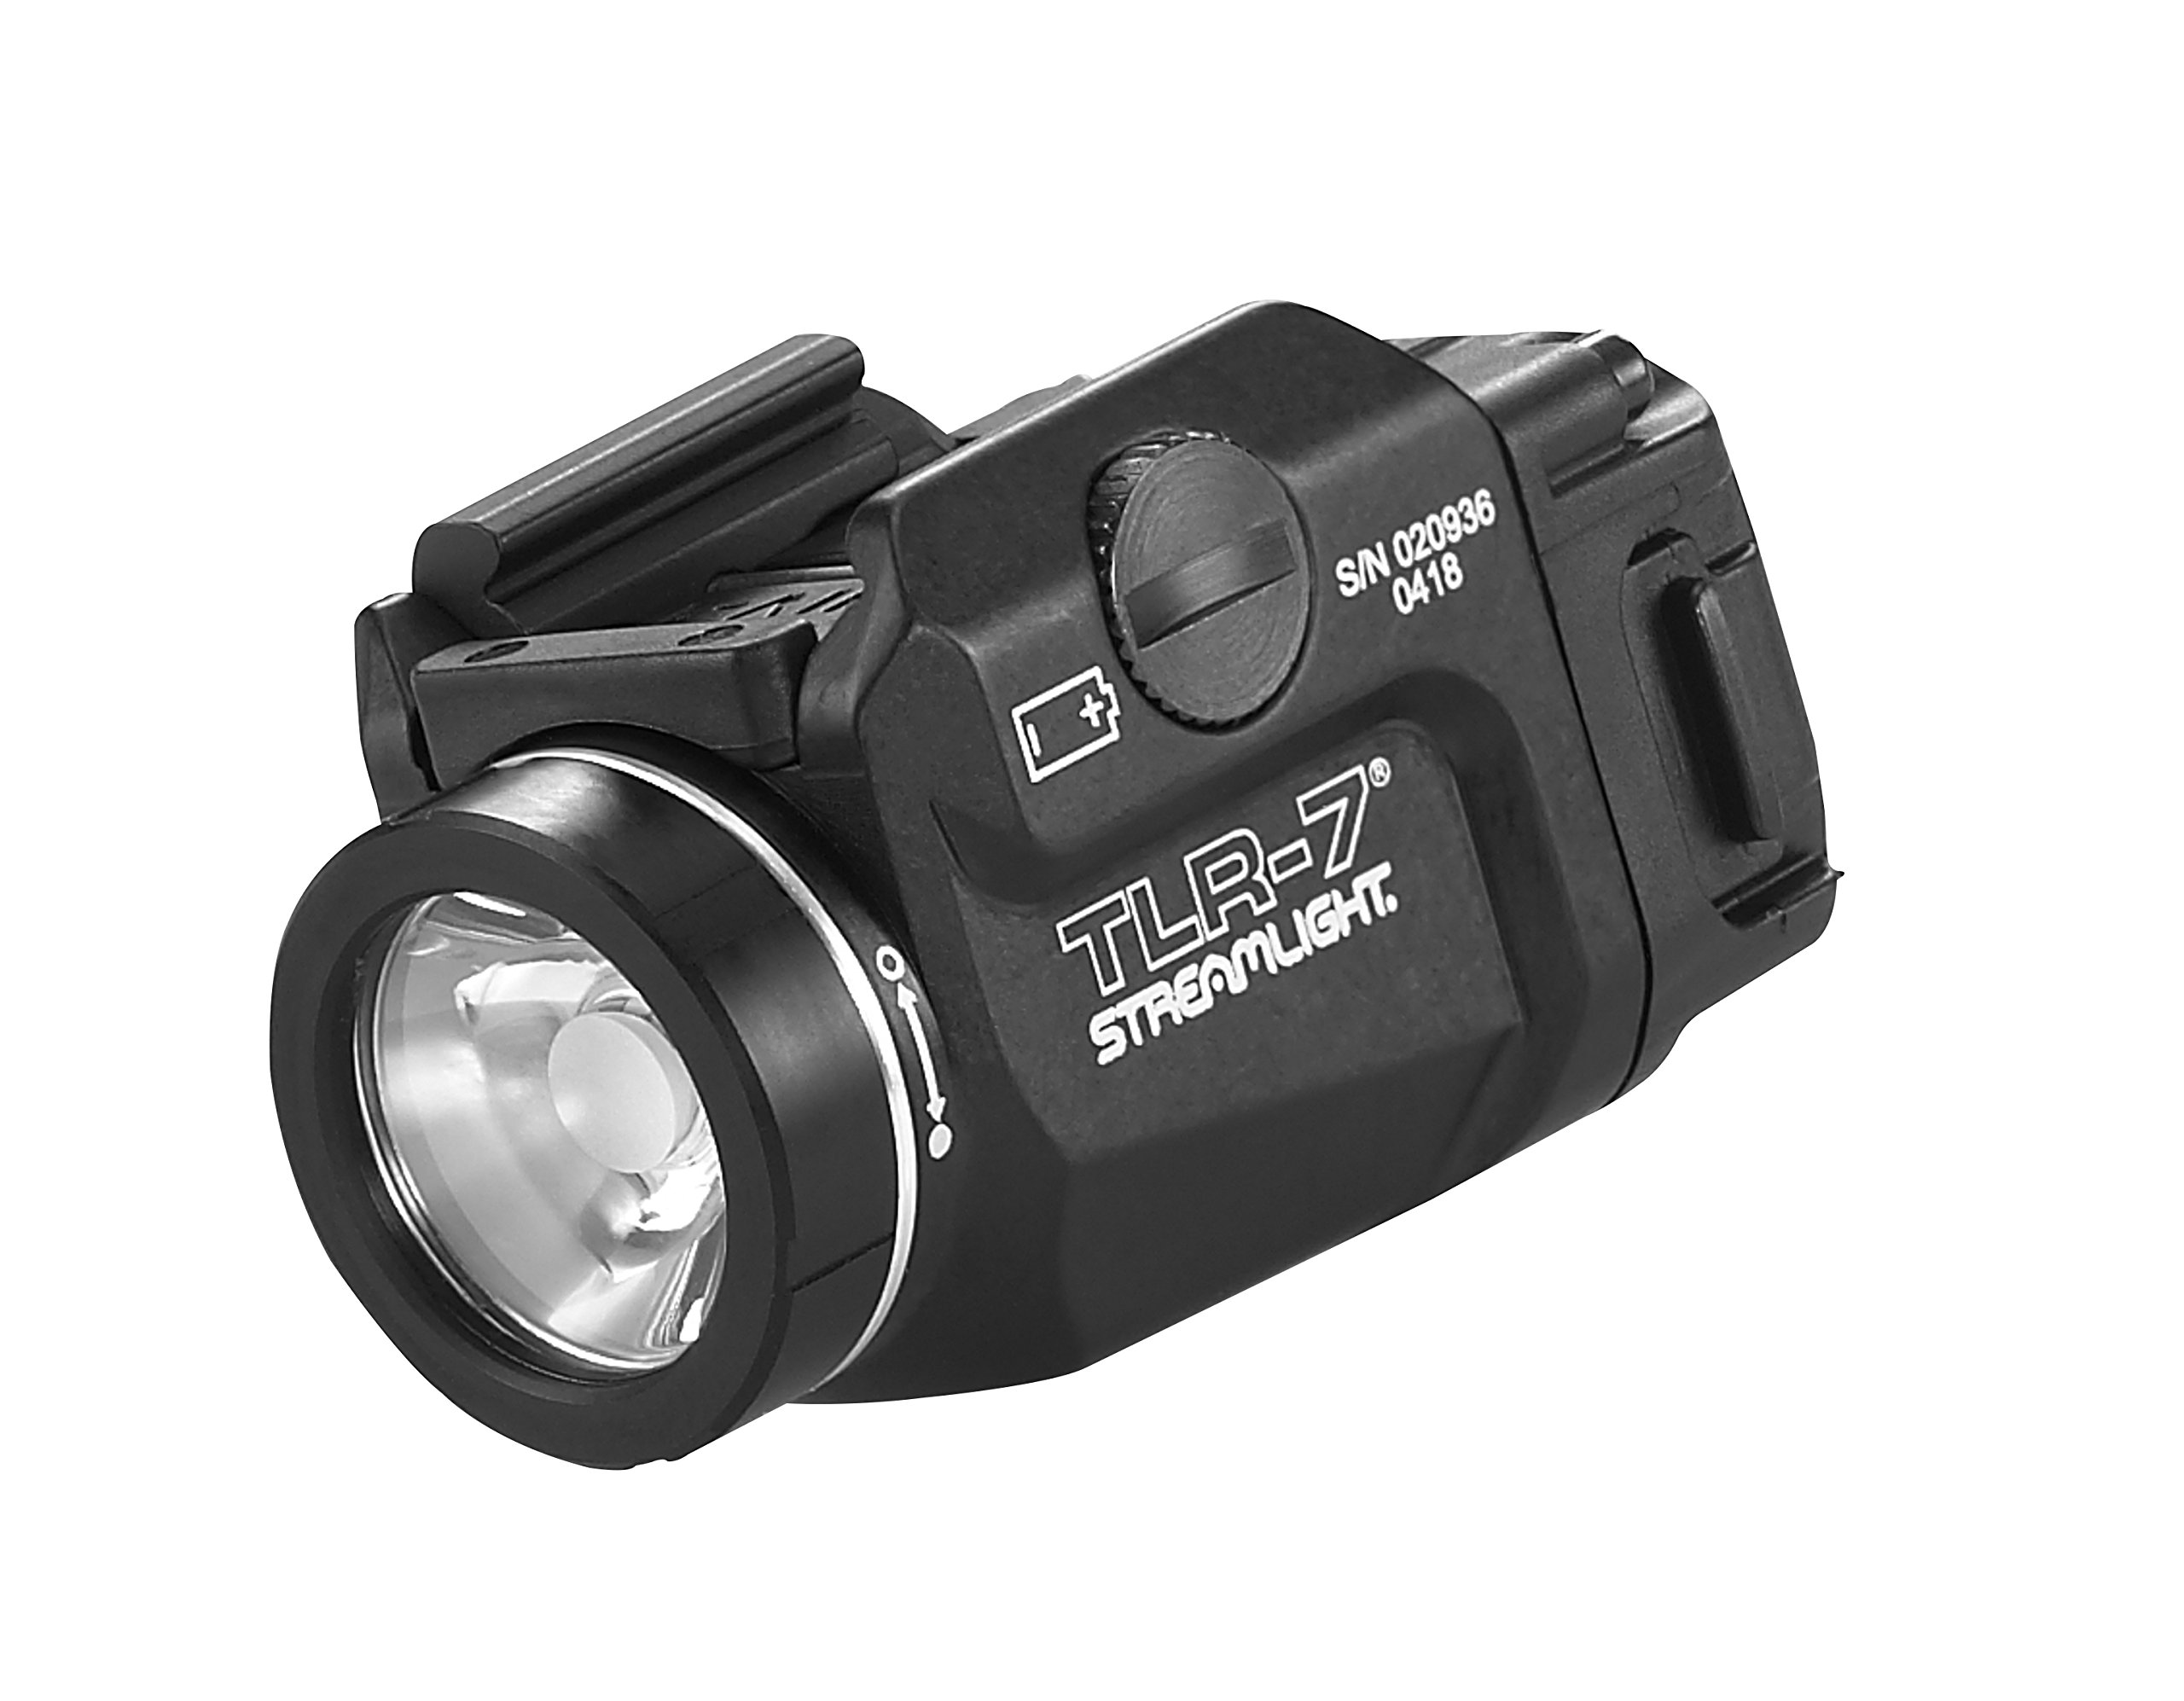 Streamlight 69420 TLR-7 Low Profile Rail Mounted Tactical Light, Black - 500 Lumens by Streamlight